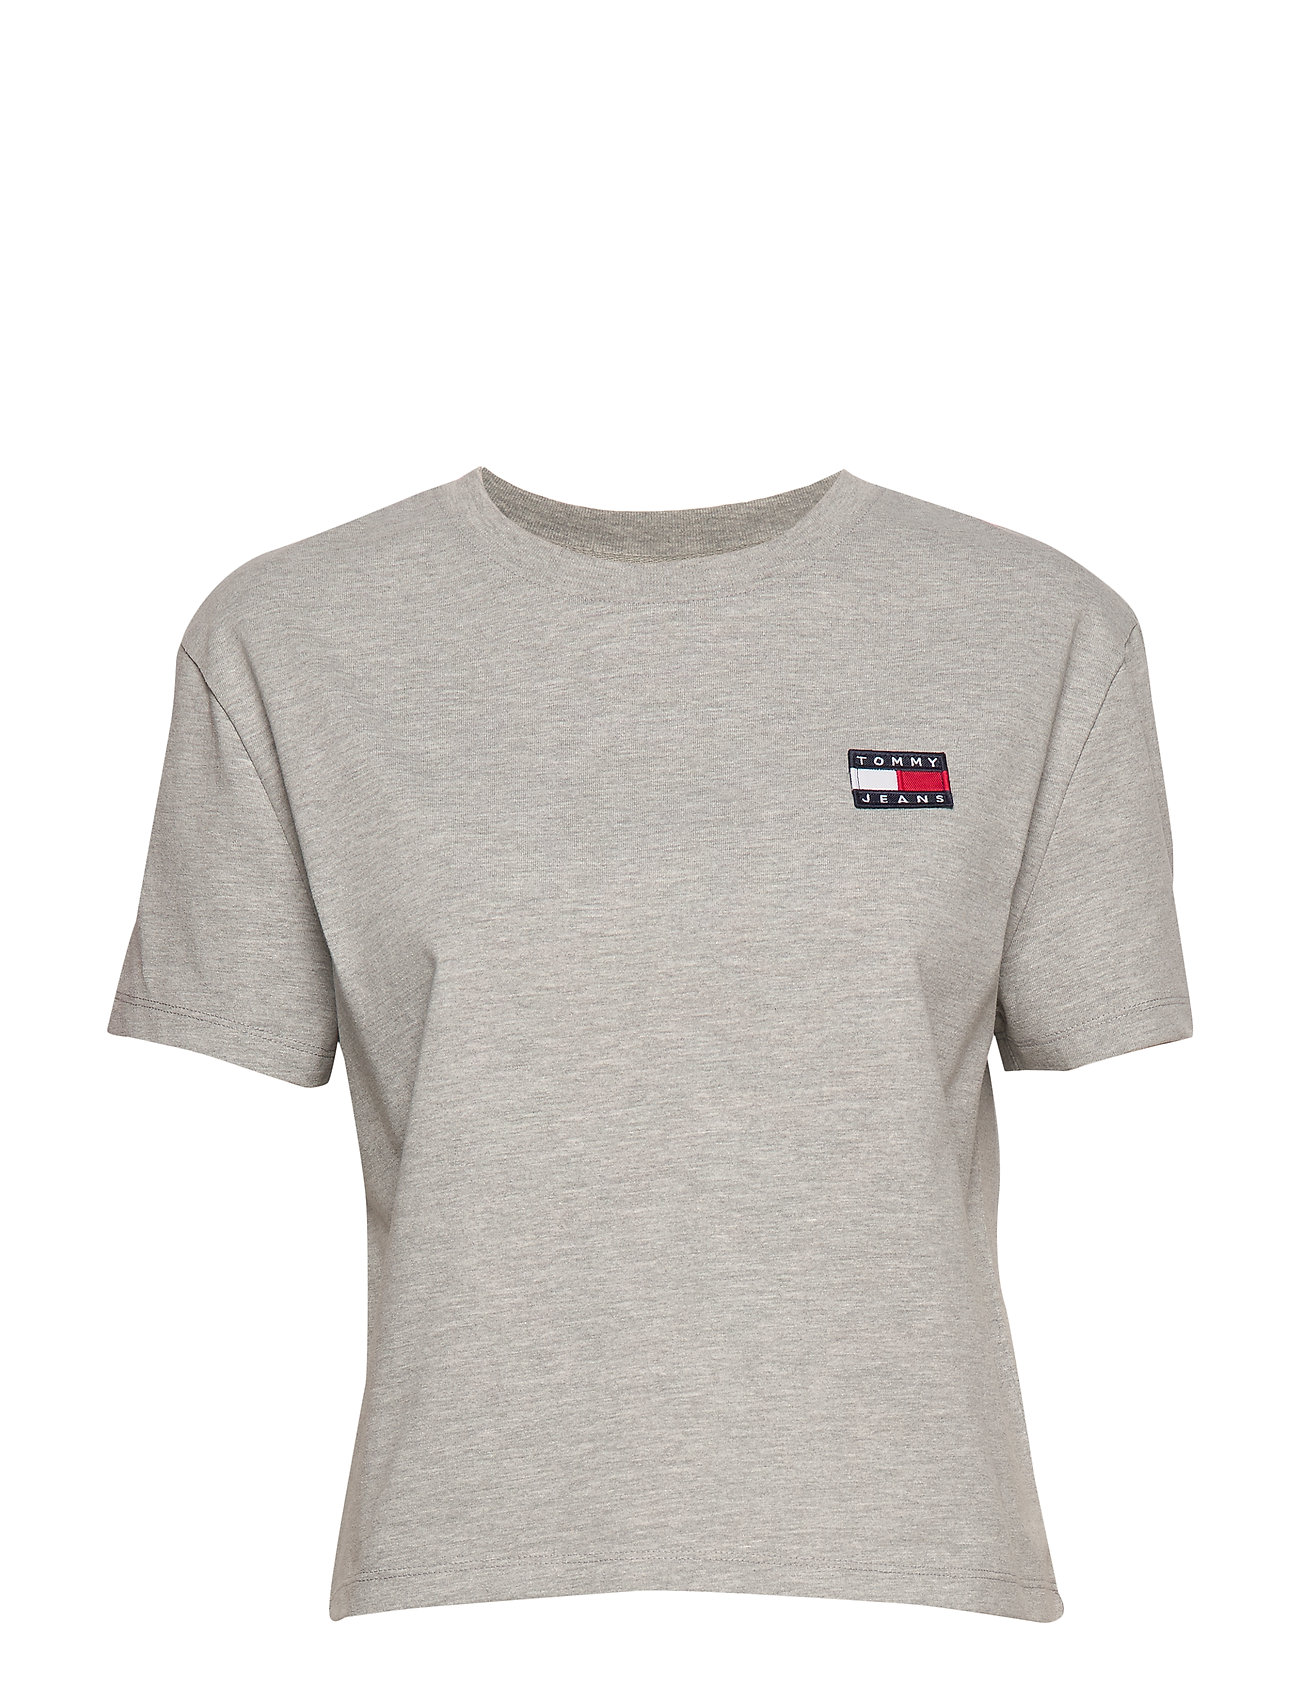 Tommy Jeans TJW TOMMY BADGE TEE - LT GREY HTR